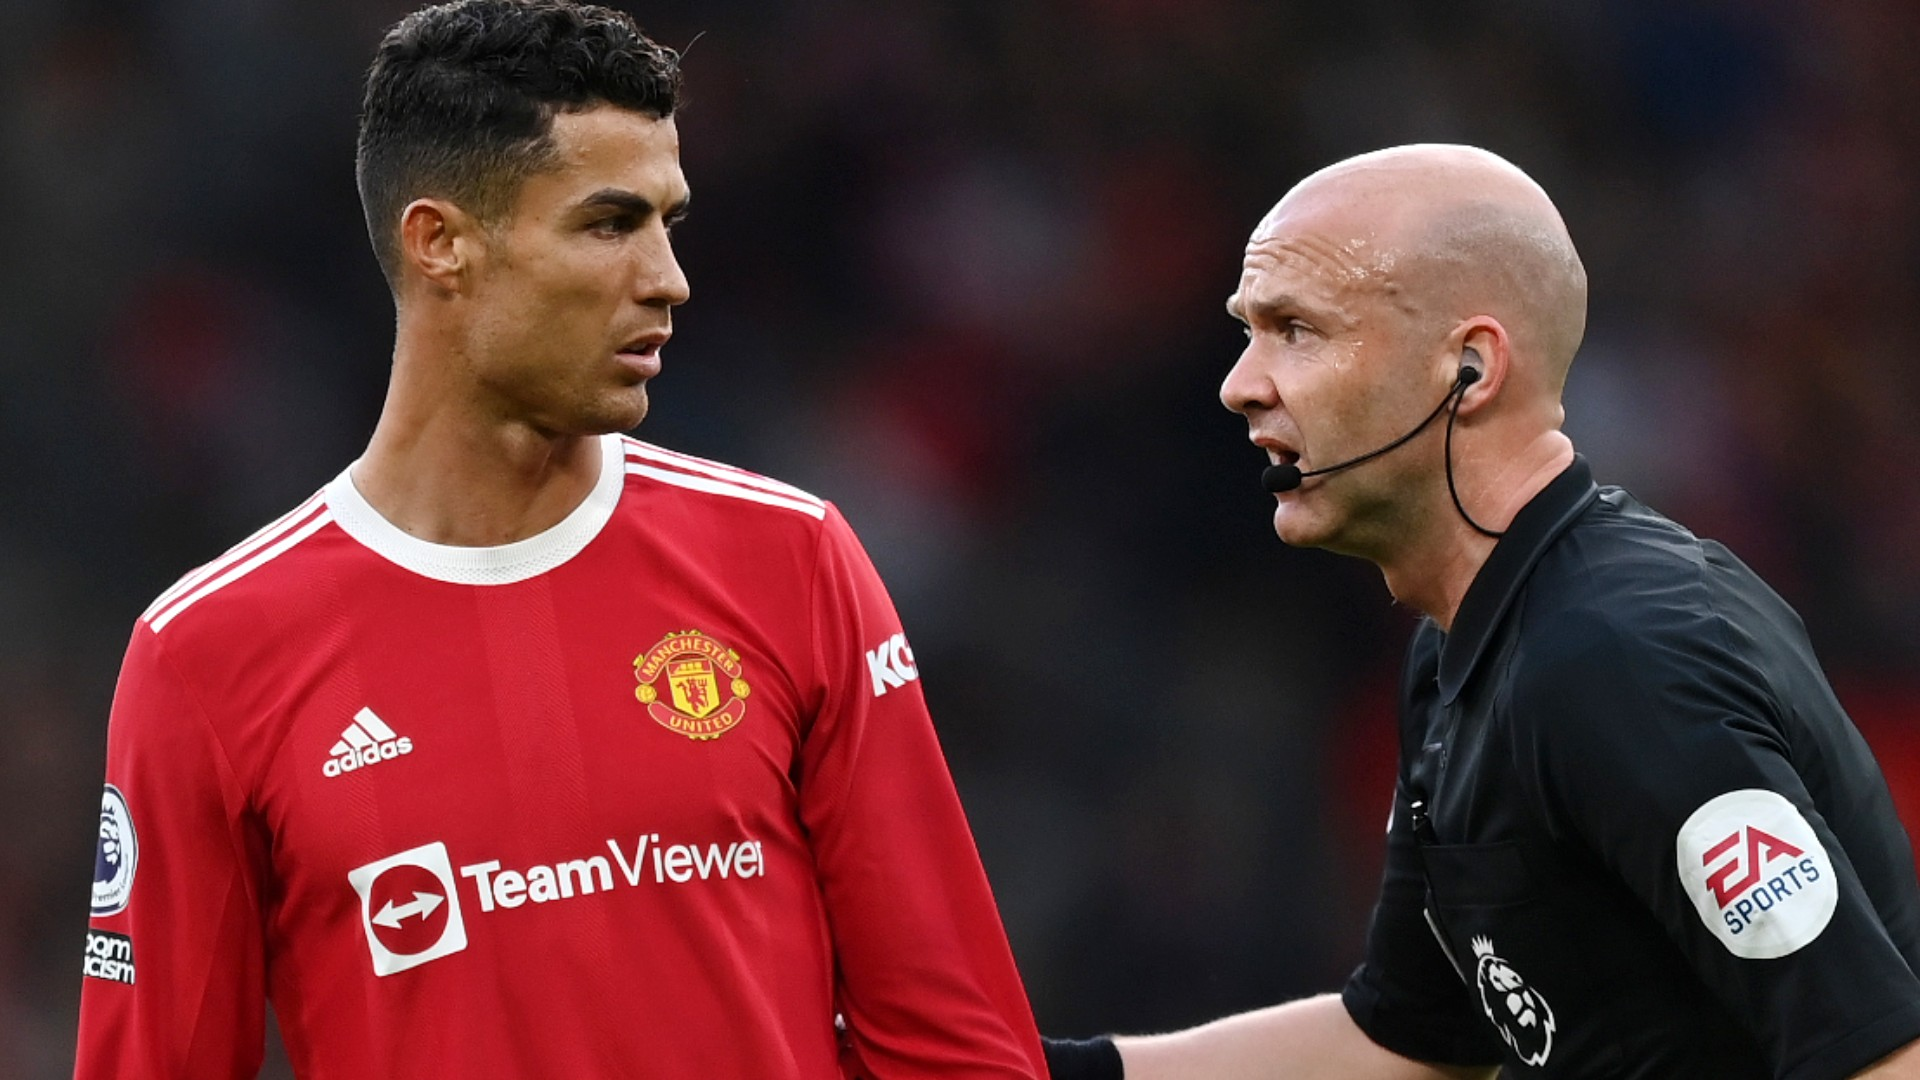 How Cristiano Ronaldo escaped red card in Liverpool loss: Klopp, Twitter react to violent kick